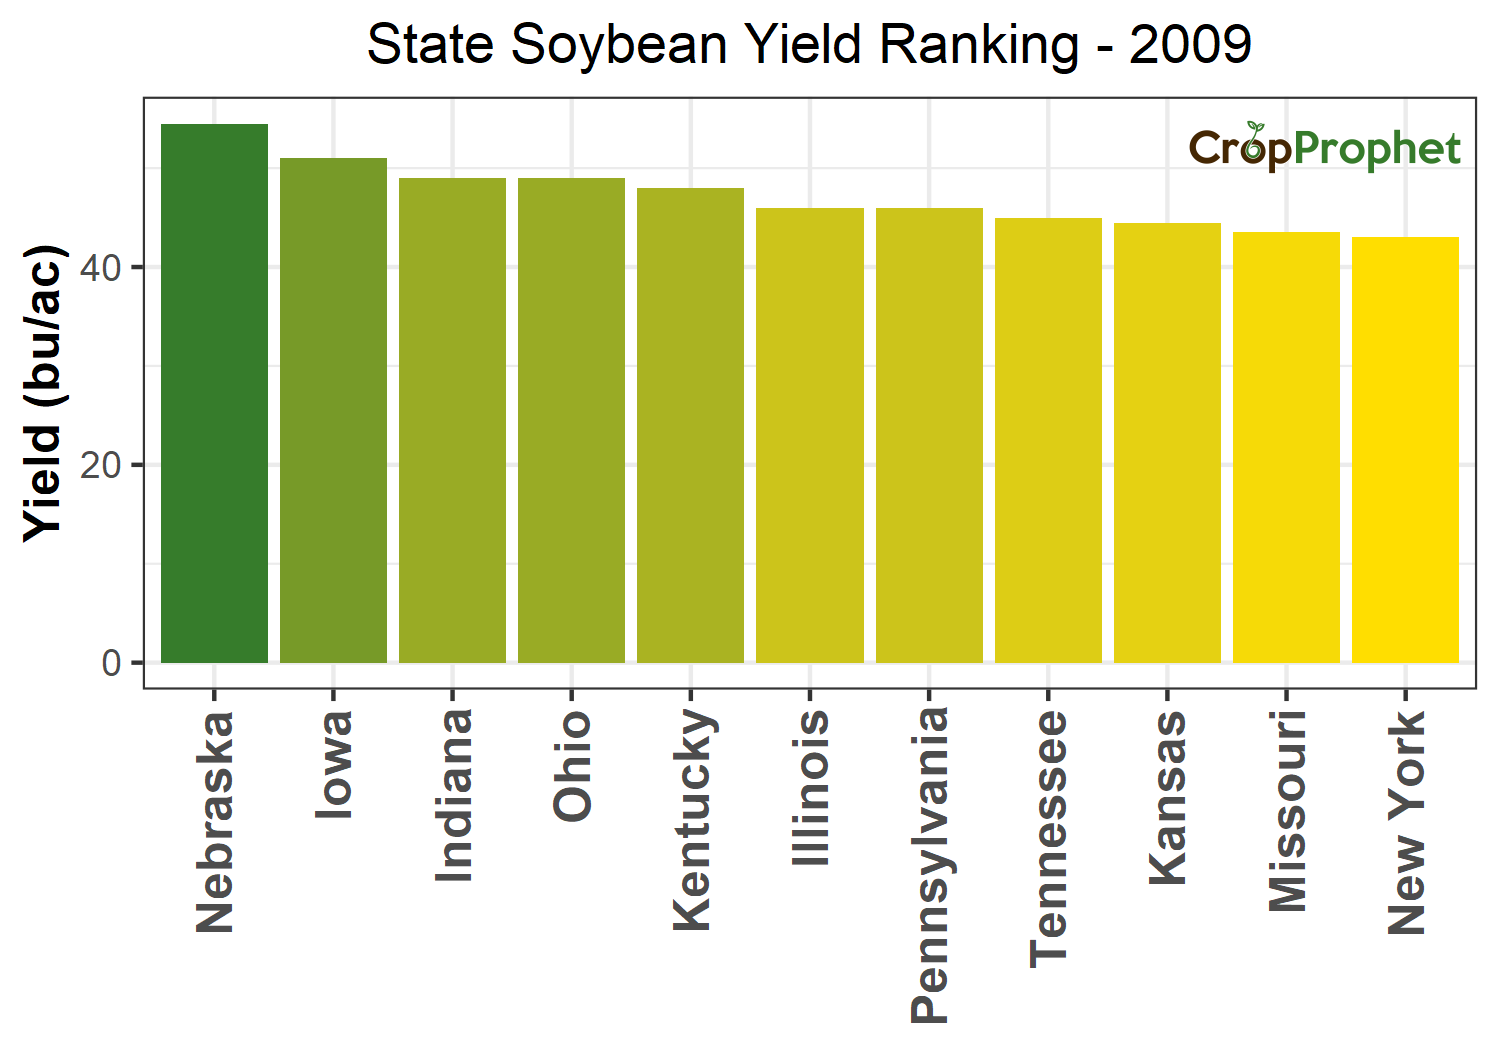 Soybean Production by State - 2009 Rankings